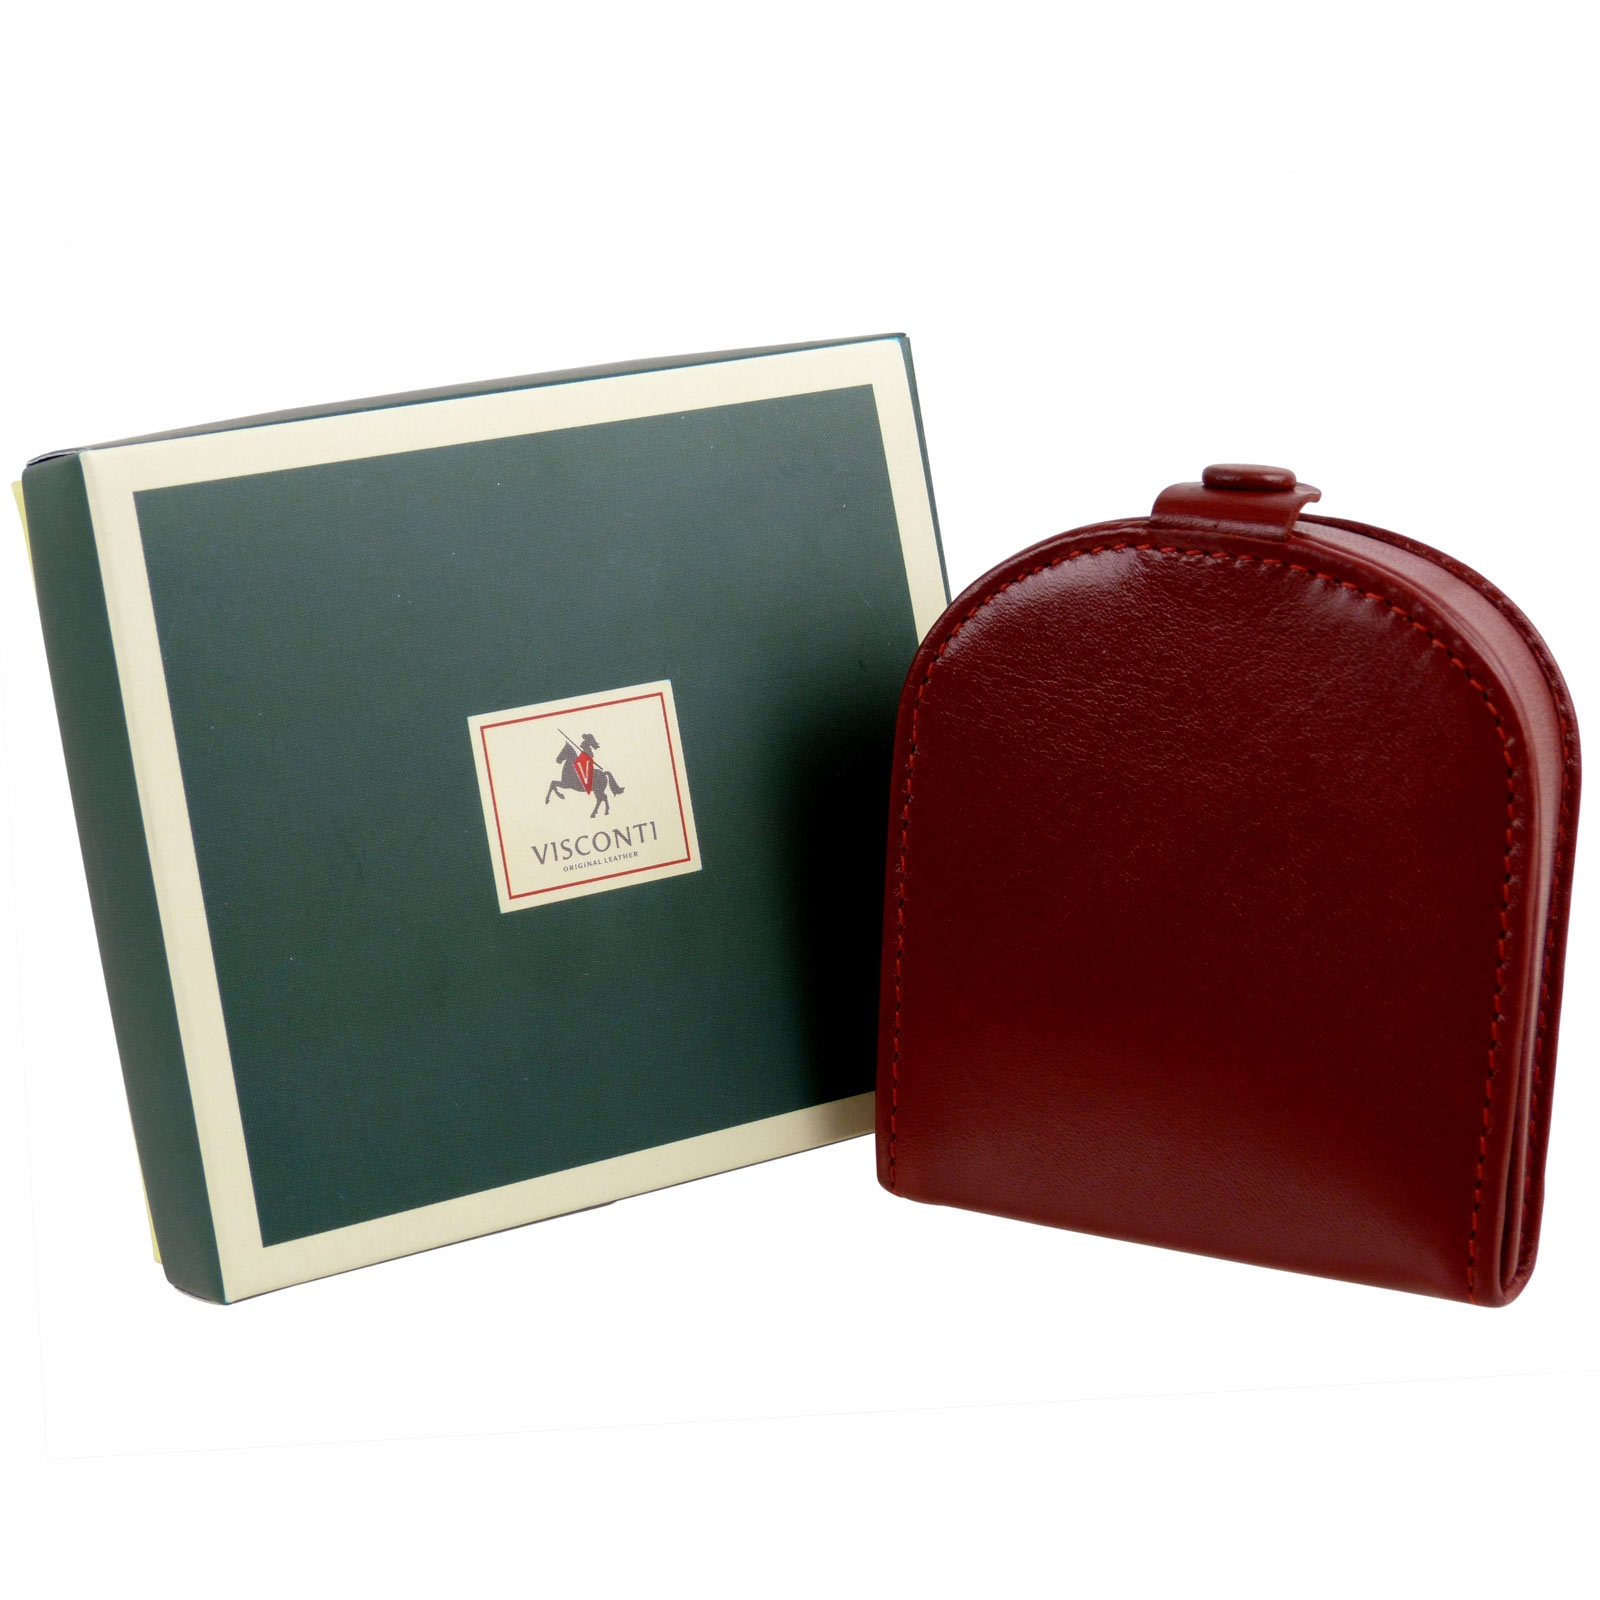 thumbnail 3 - Mens-Classic-Leather-Tabbed-Coin-Tray-by-Visconti-Monza-Collection-Gift-Boxed